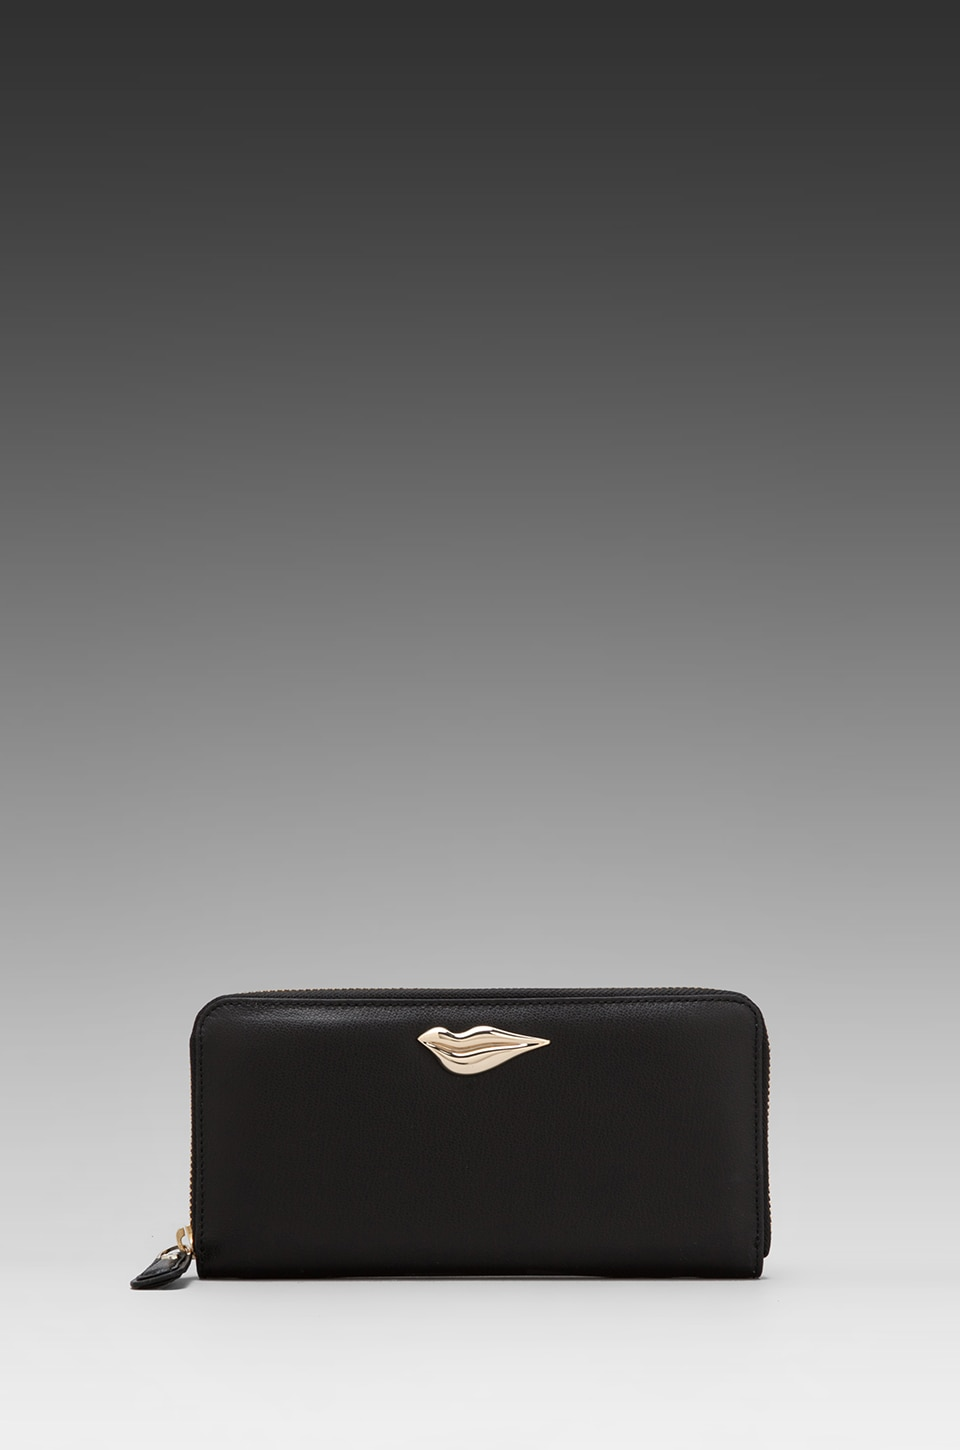 Diane von Furstenberg Lips Zip Around Leather Wallet in Black